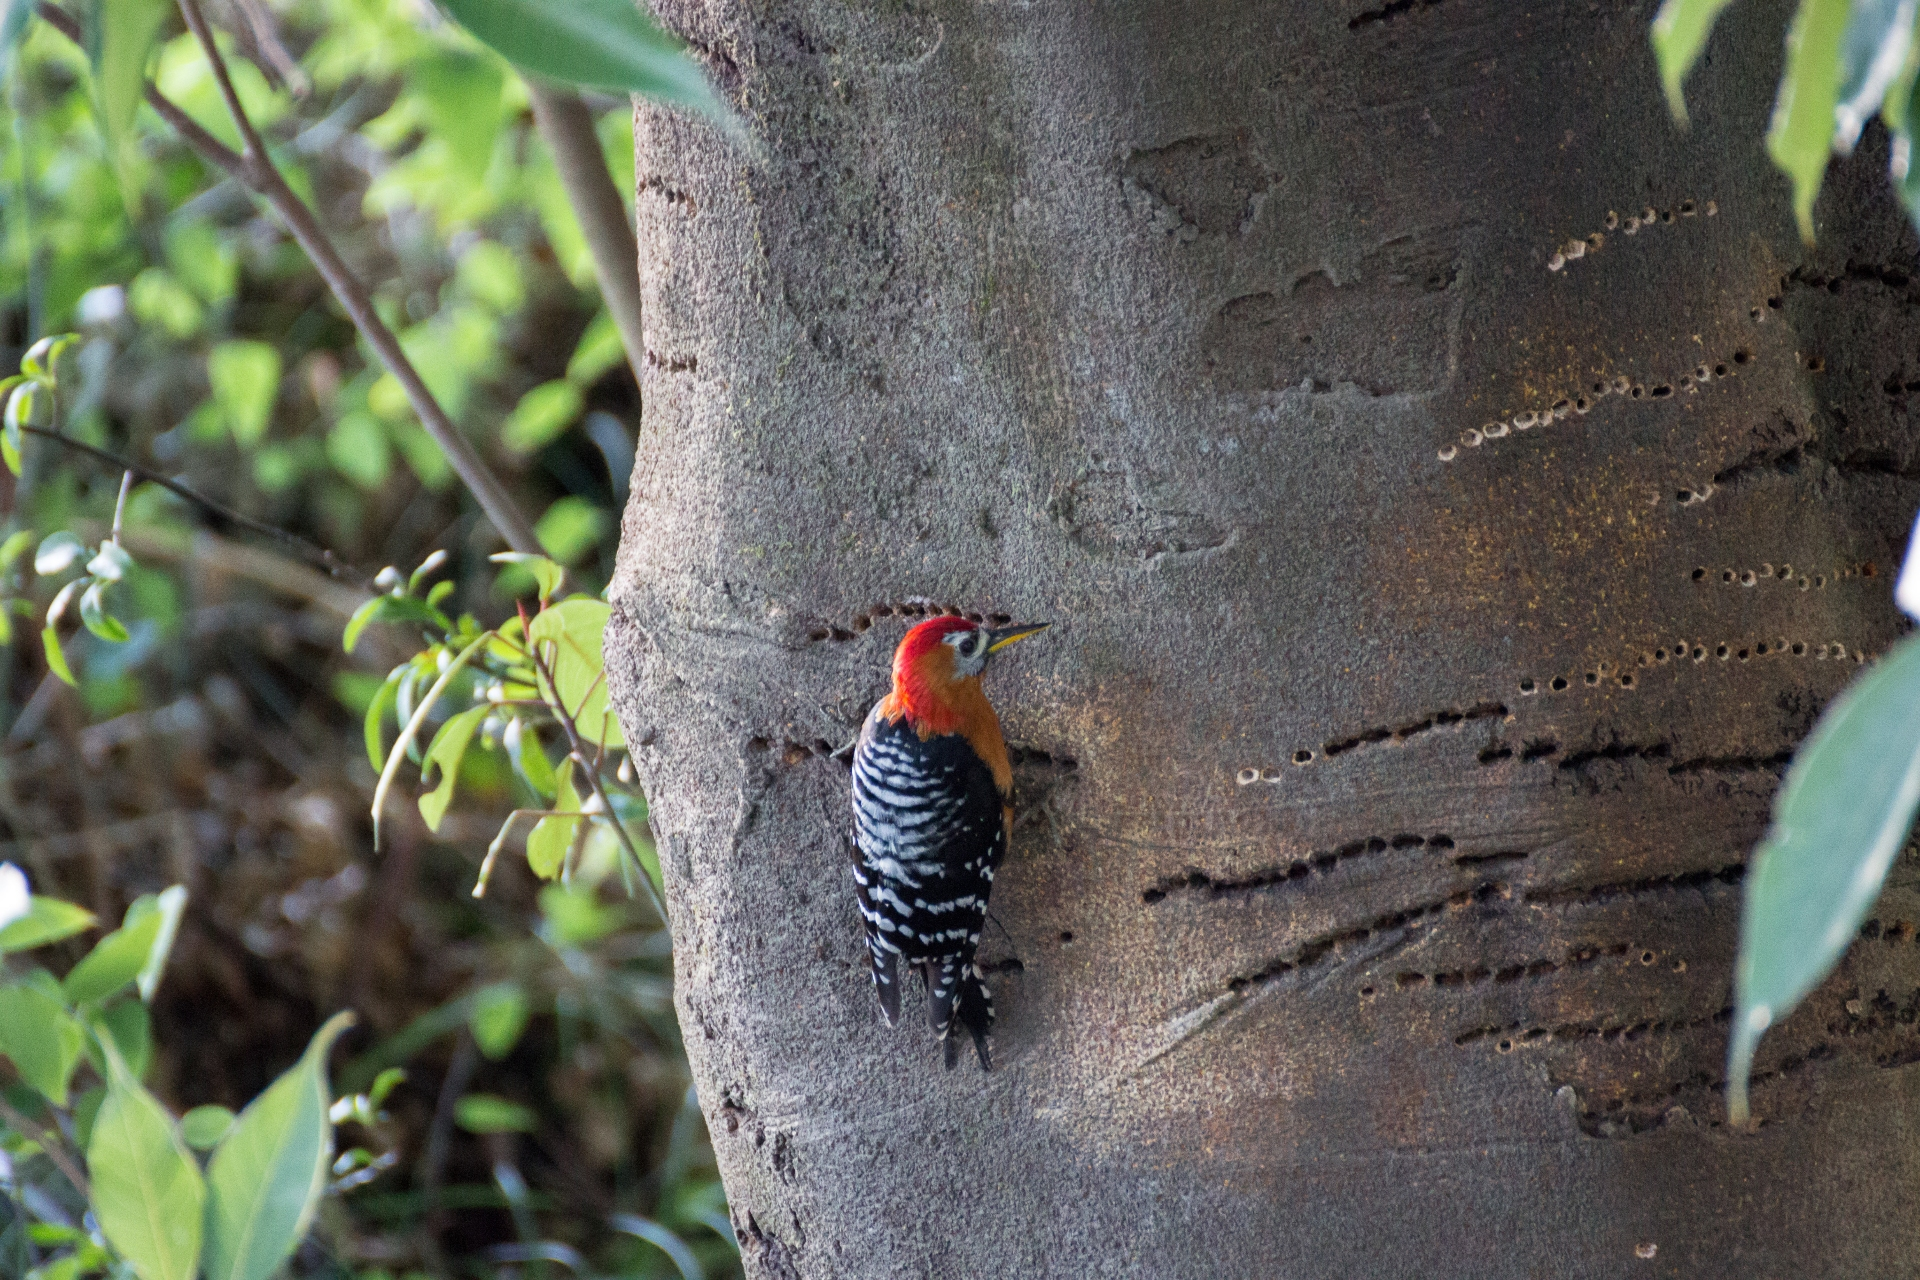 A male rufous-bellied woodpecker diligently drills sap wells in a typical straight line formation. Photo: Tarun Menon </br> A female rufous-bellied woodpecker can be identified by its black crown and the absence of the bright red on its head.